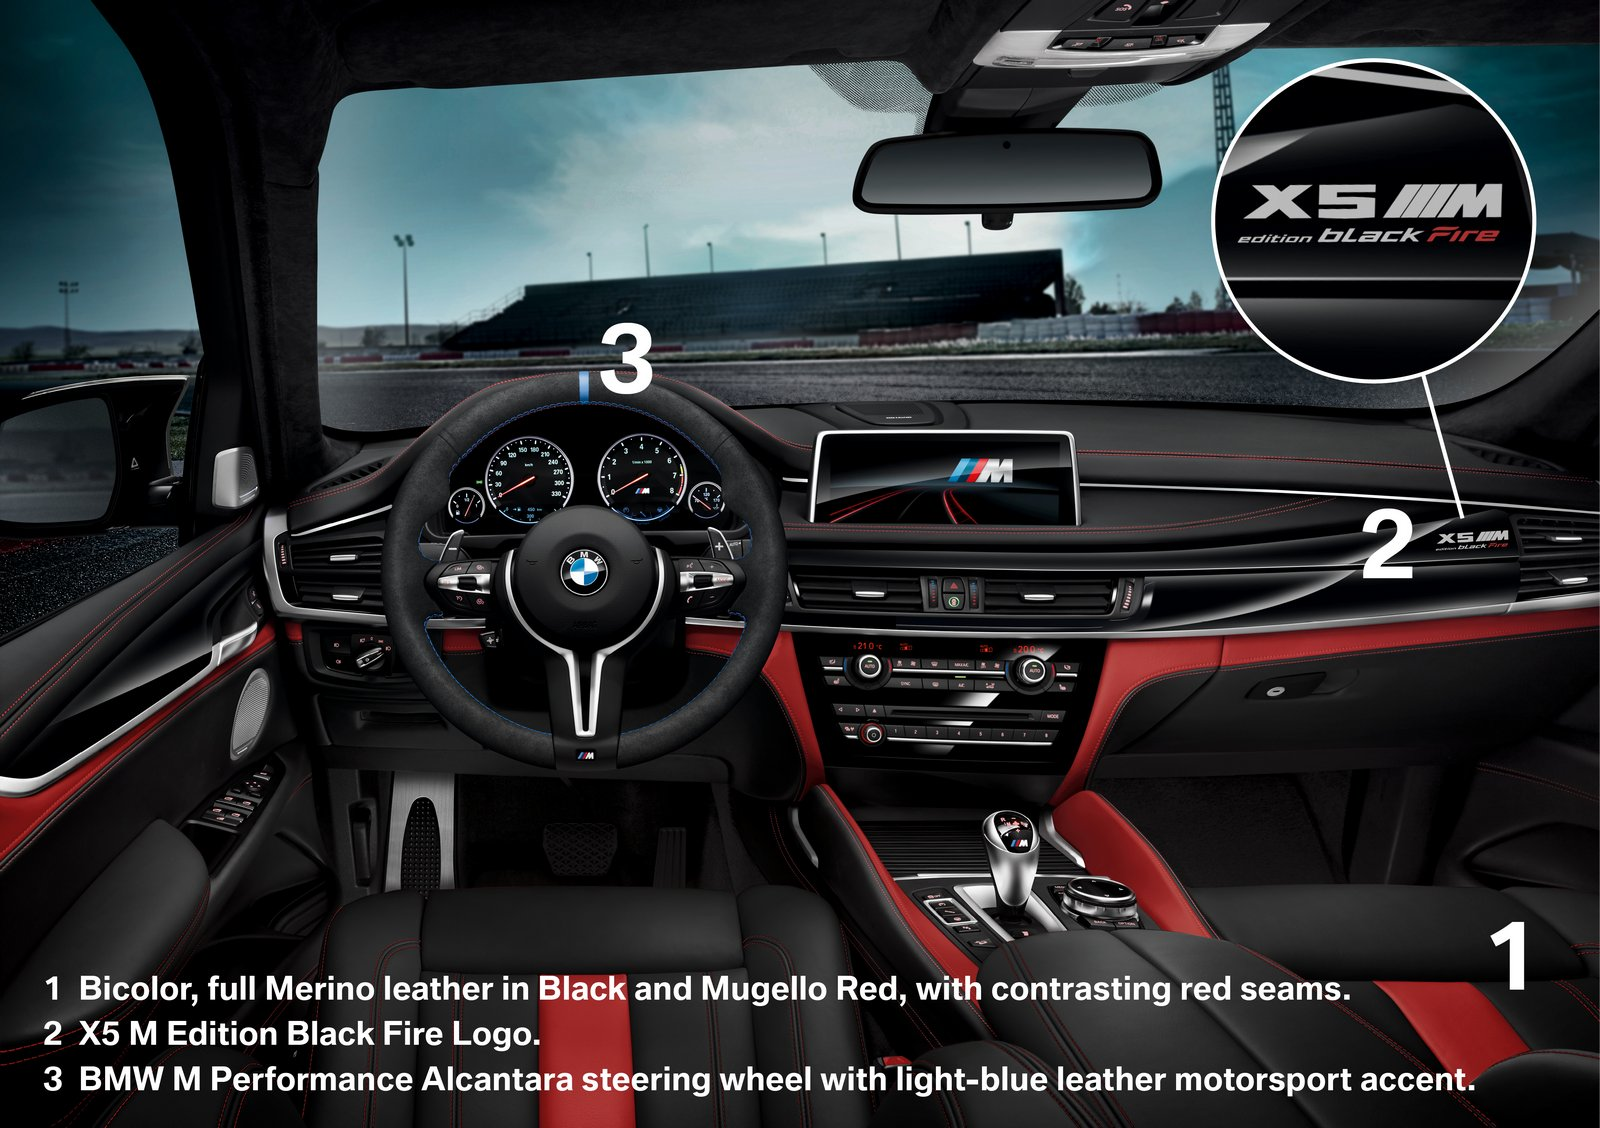 BMW-X5-M-Black-Fire-Edition-14